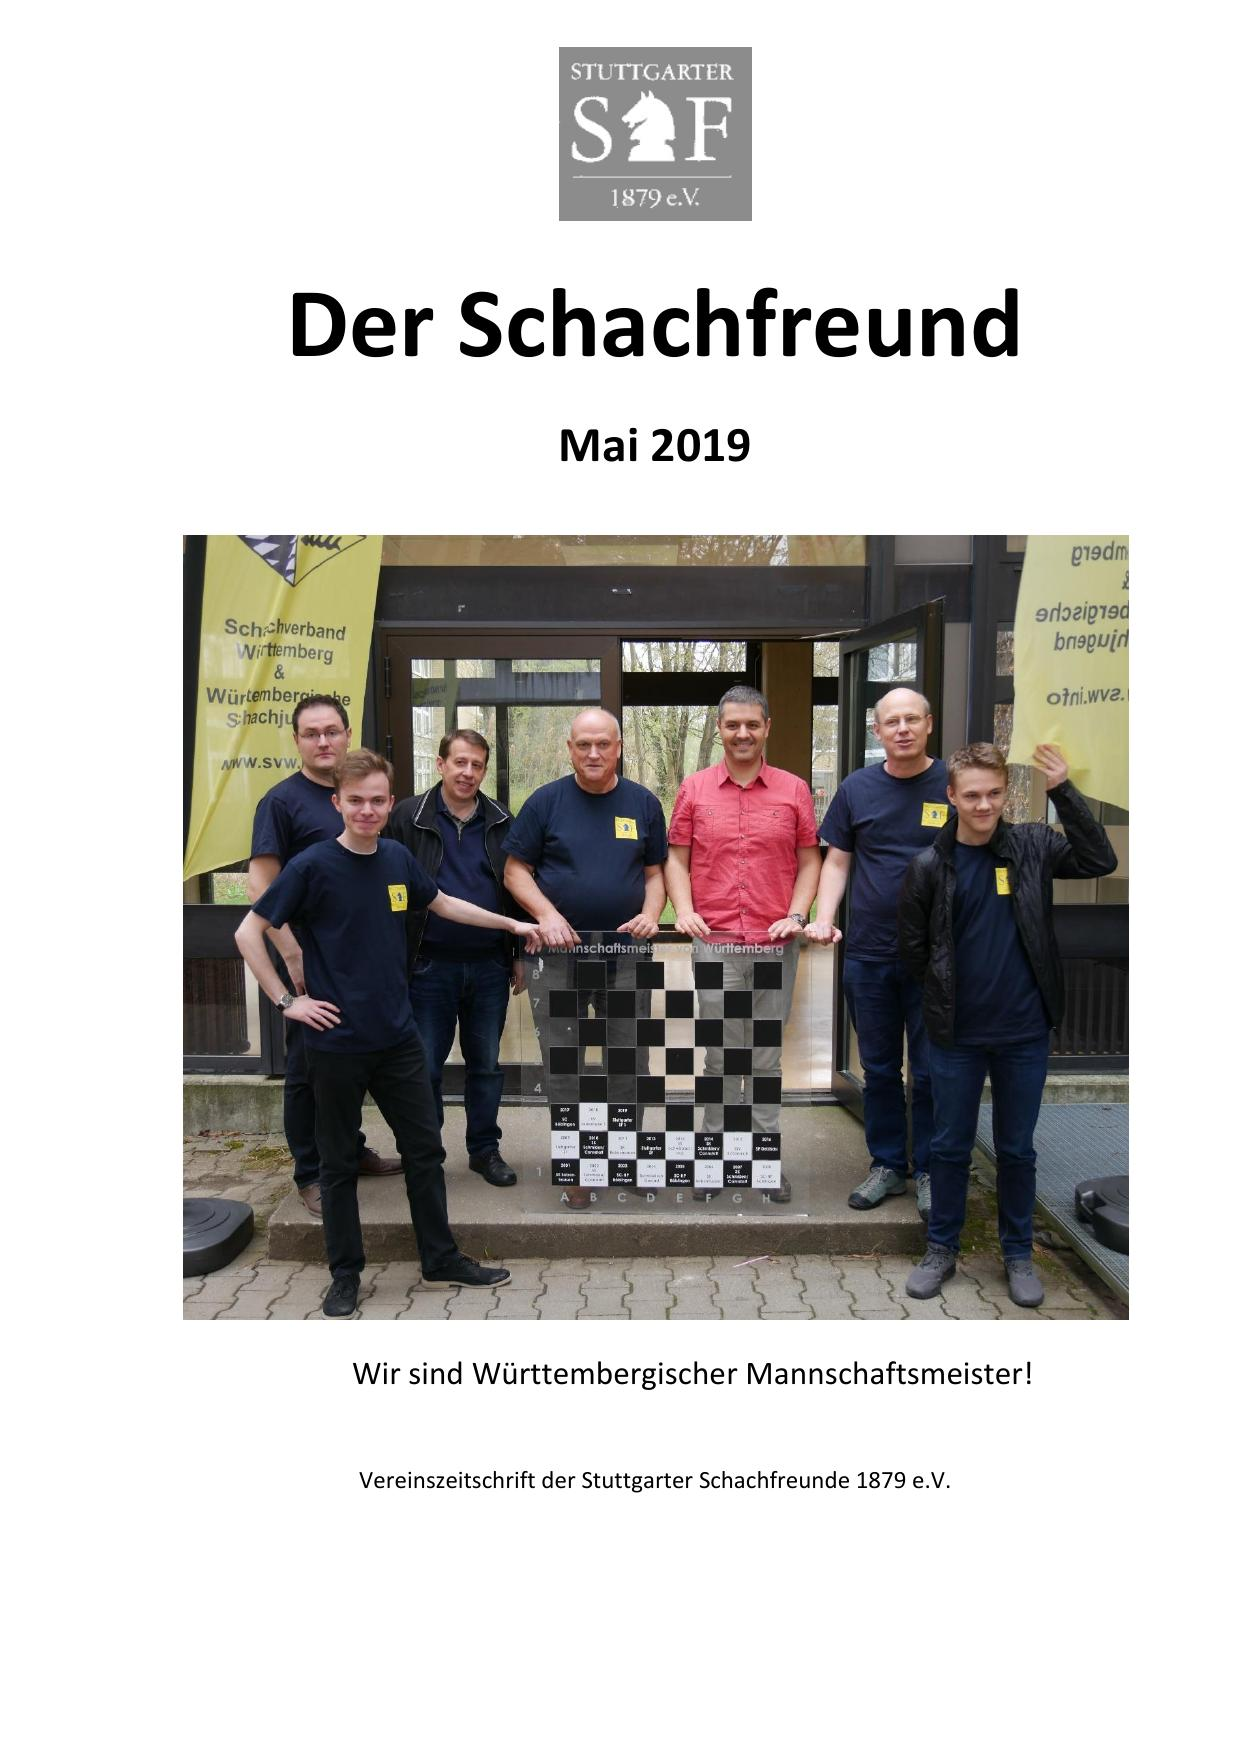 Schachfreund-2019-05